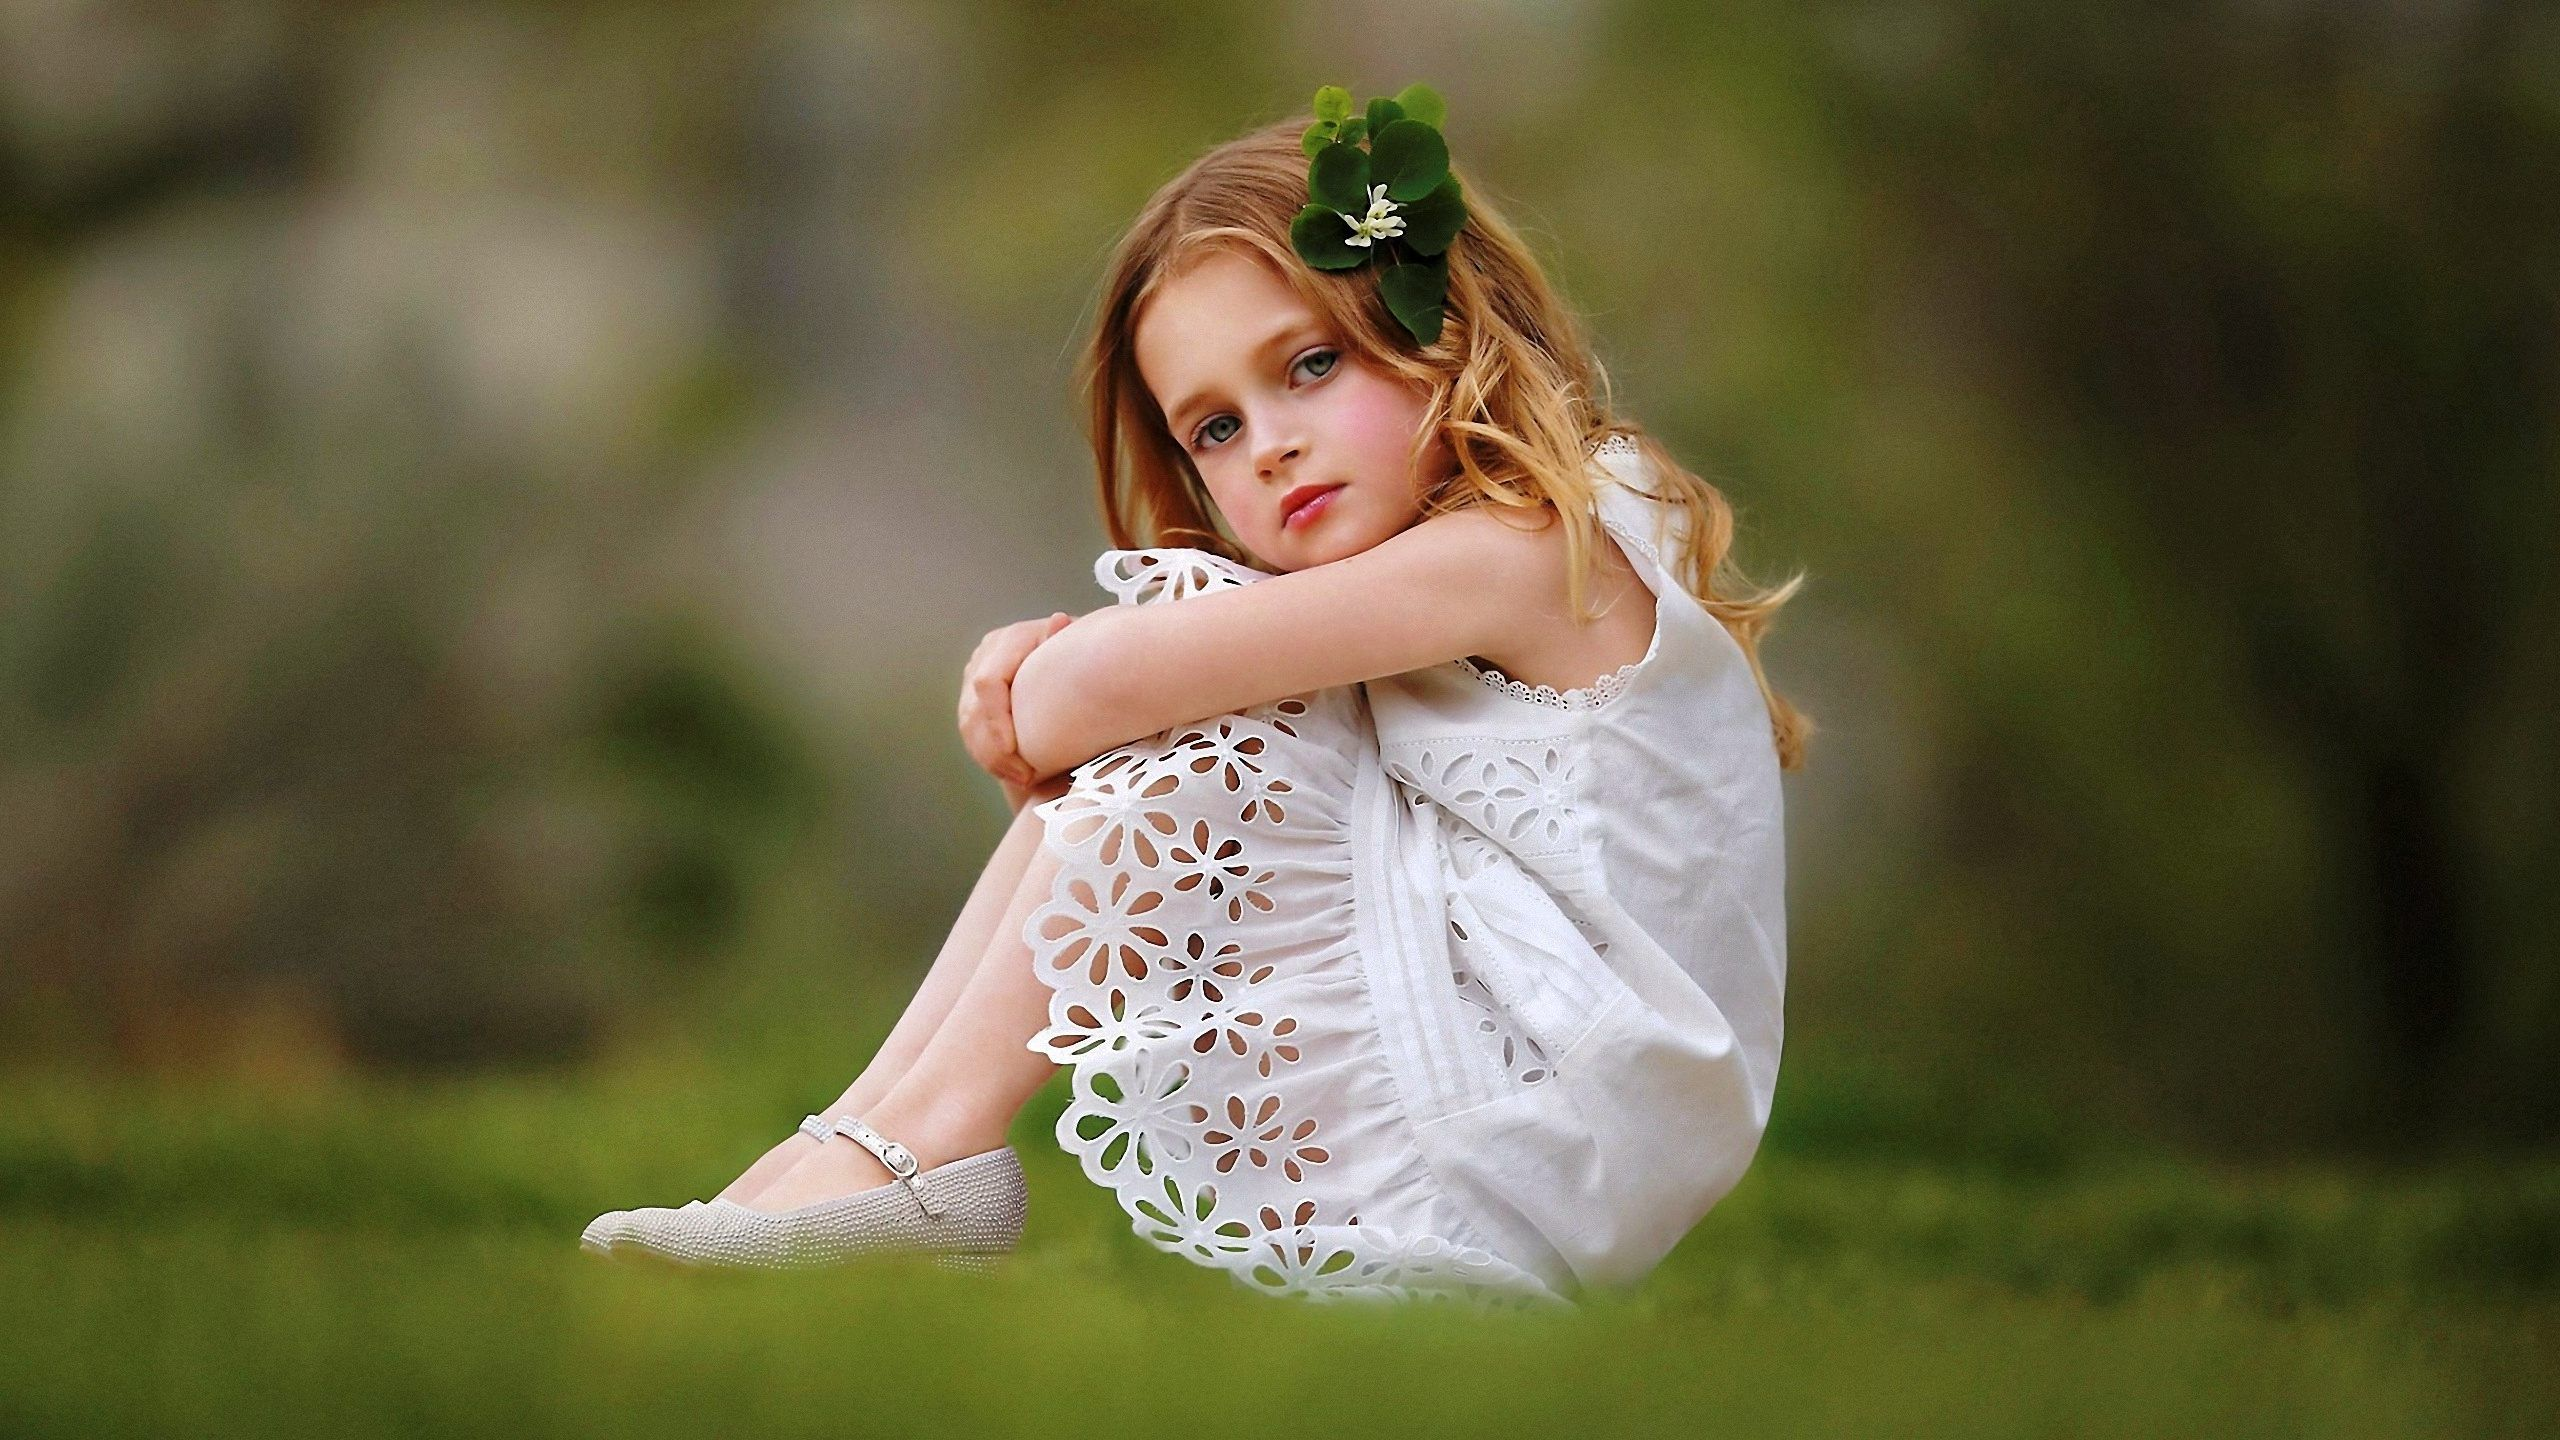 Little girl photos child photography of cute little girl wallpaper little girl photos child photography of cute little girl wallpaper hd for desktop altavistaventures Choice Image